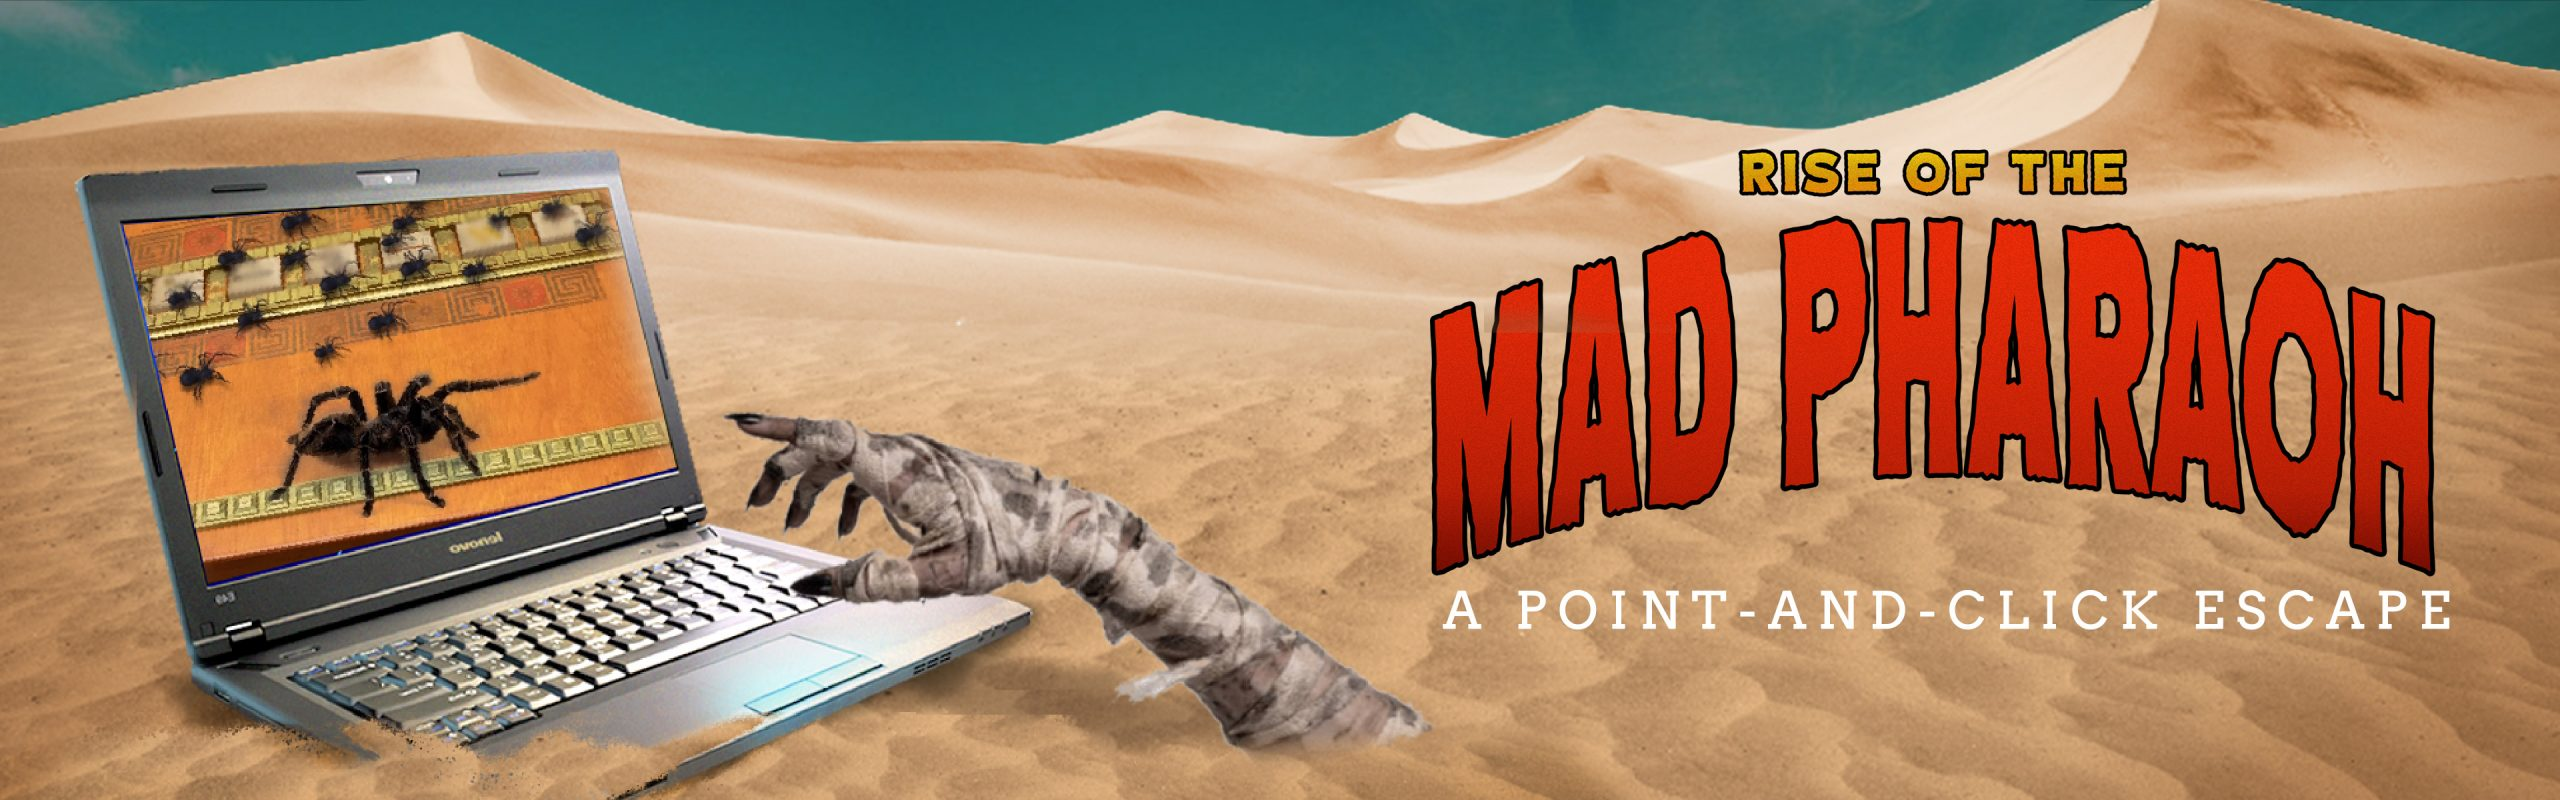 rise of the mad pharaoh point and click